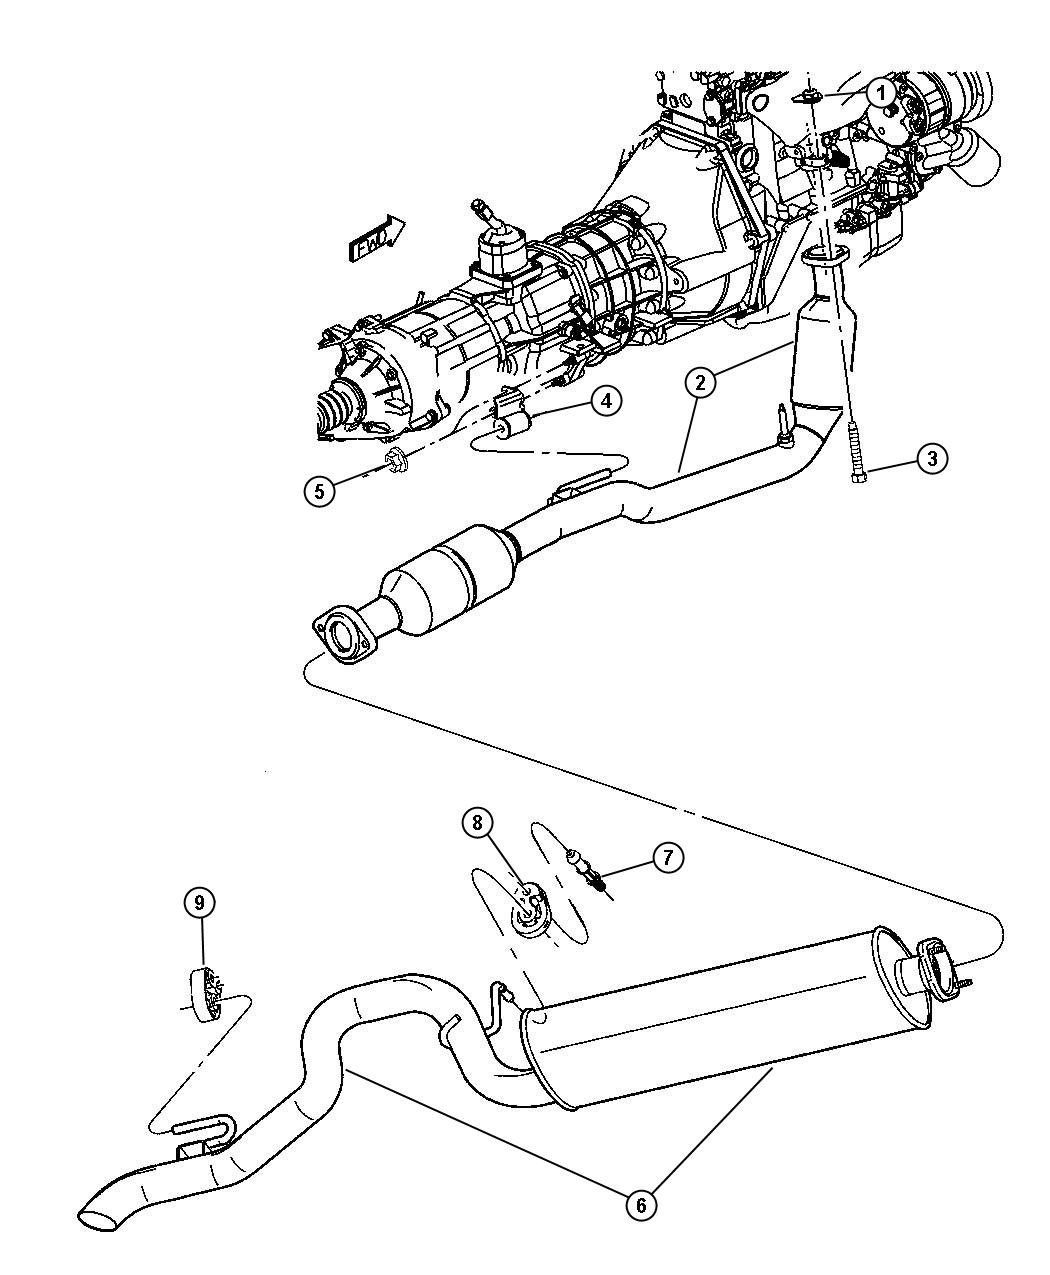 52101120AD - Jeep Used for: MUFFLER AND TAILPIPE. Exhaust ...